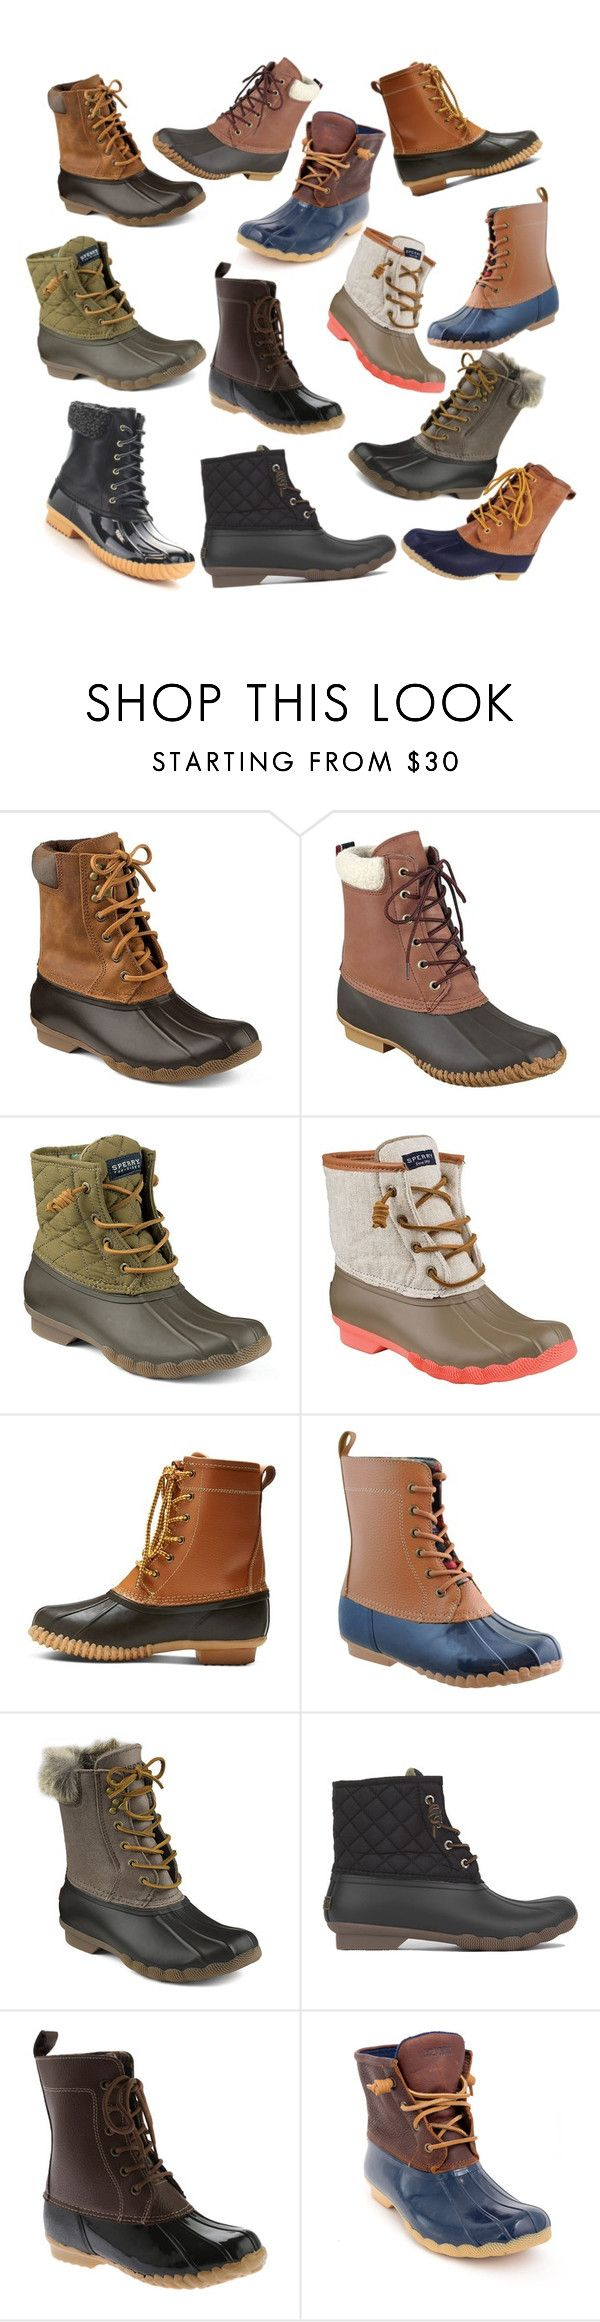 """Duck Boots!"" by olivianaz ❤ liked on Polyvore featuring Sperry Top-Sider, Tommy Hilfiger, Merona, Sporto and Nature Breeze"